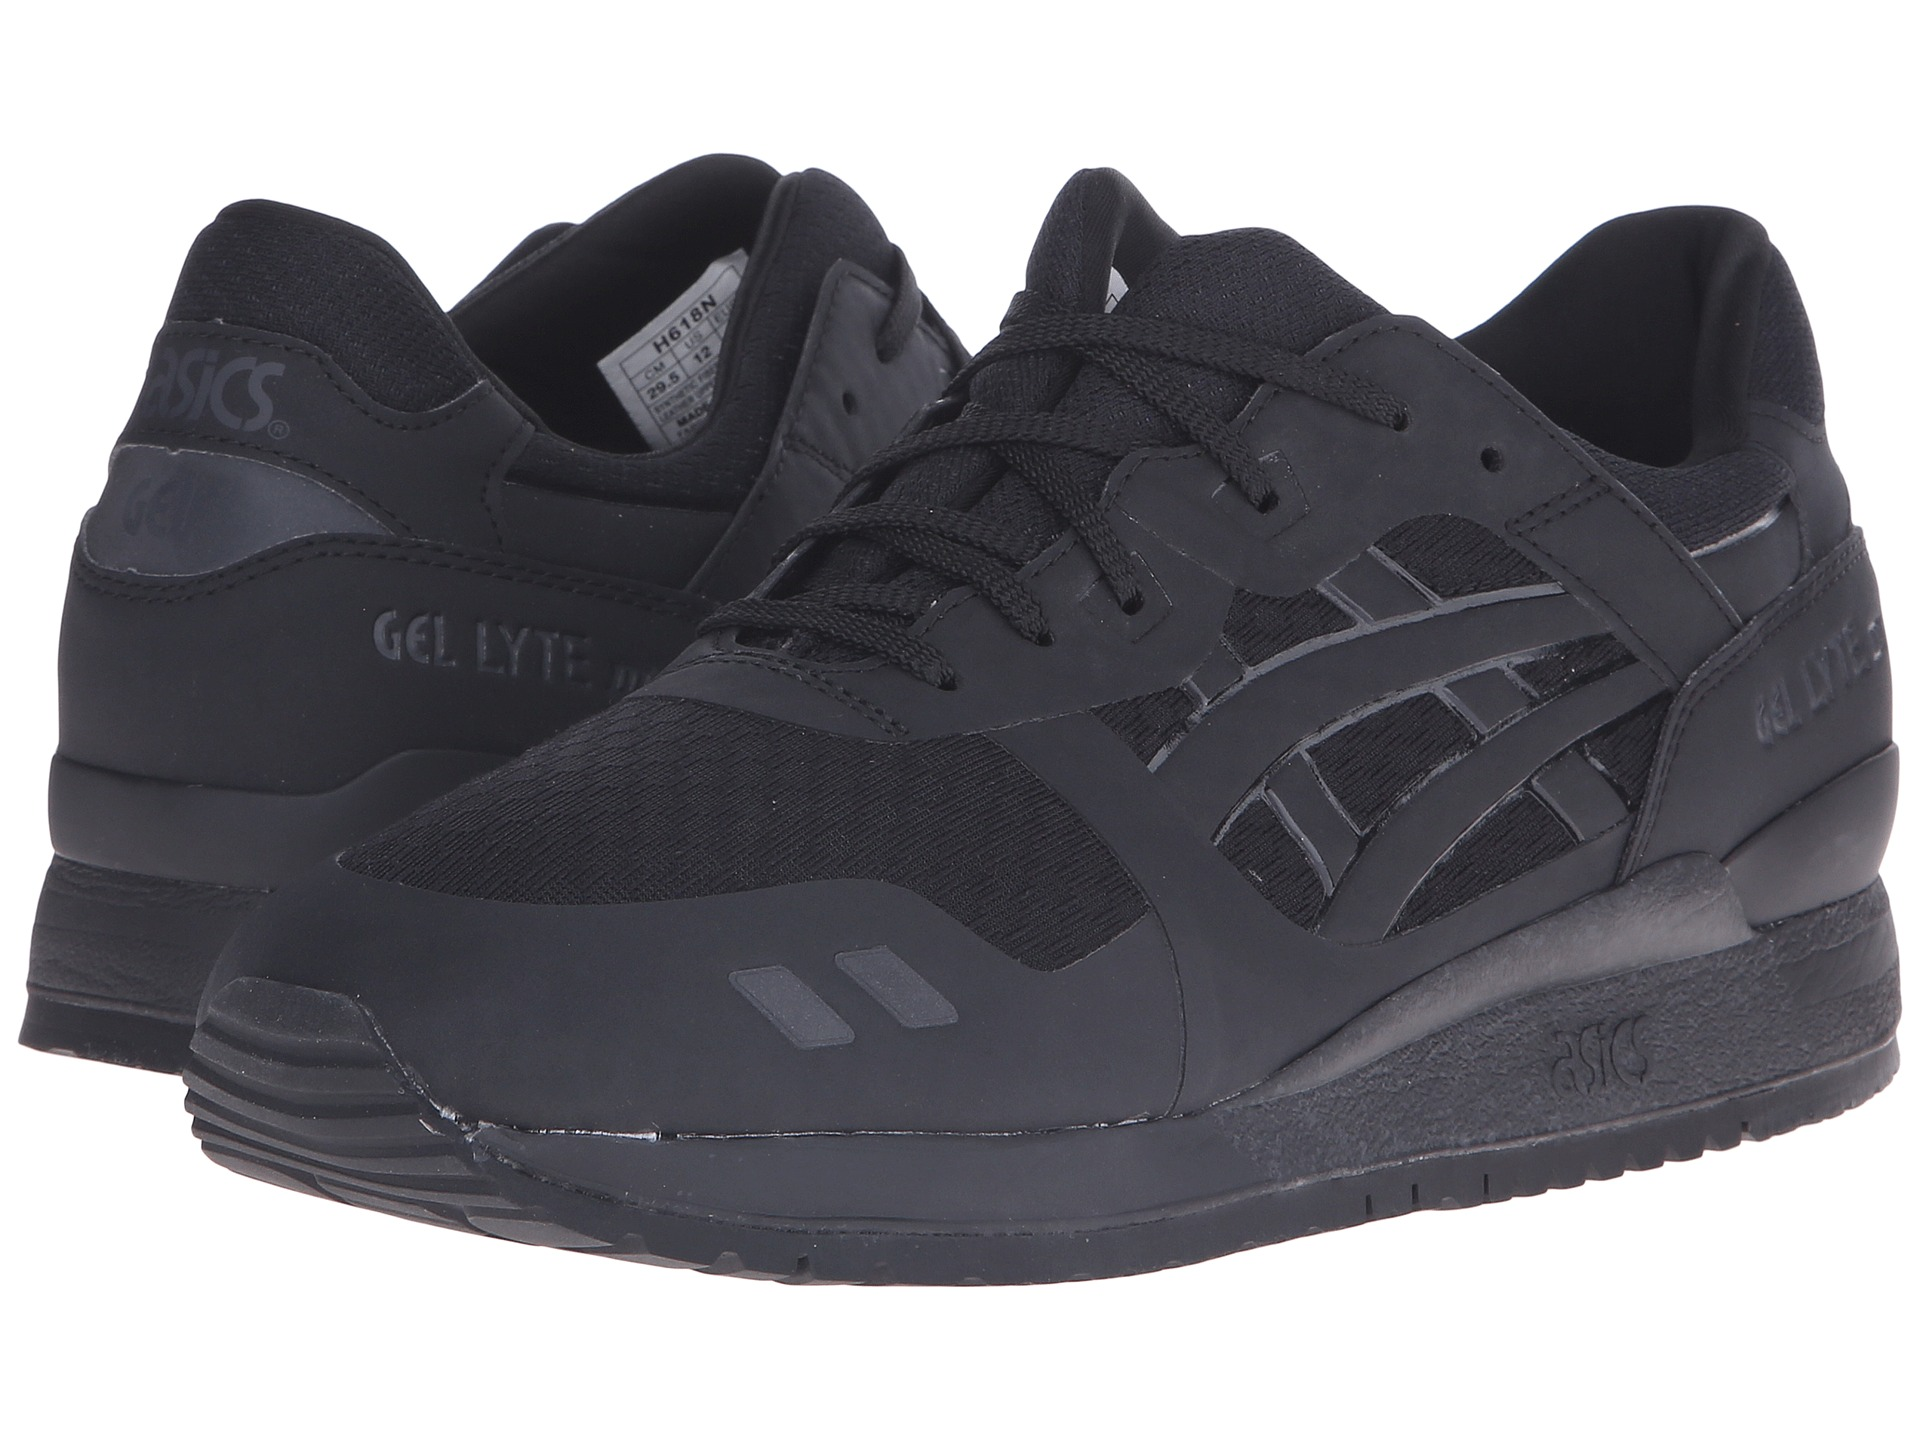 comprare popolare come trovare boutique outlet Buy asics onitsuka tiger gel lyte iii > Up to OFF36% Discounted